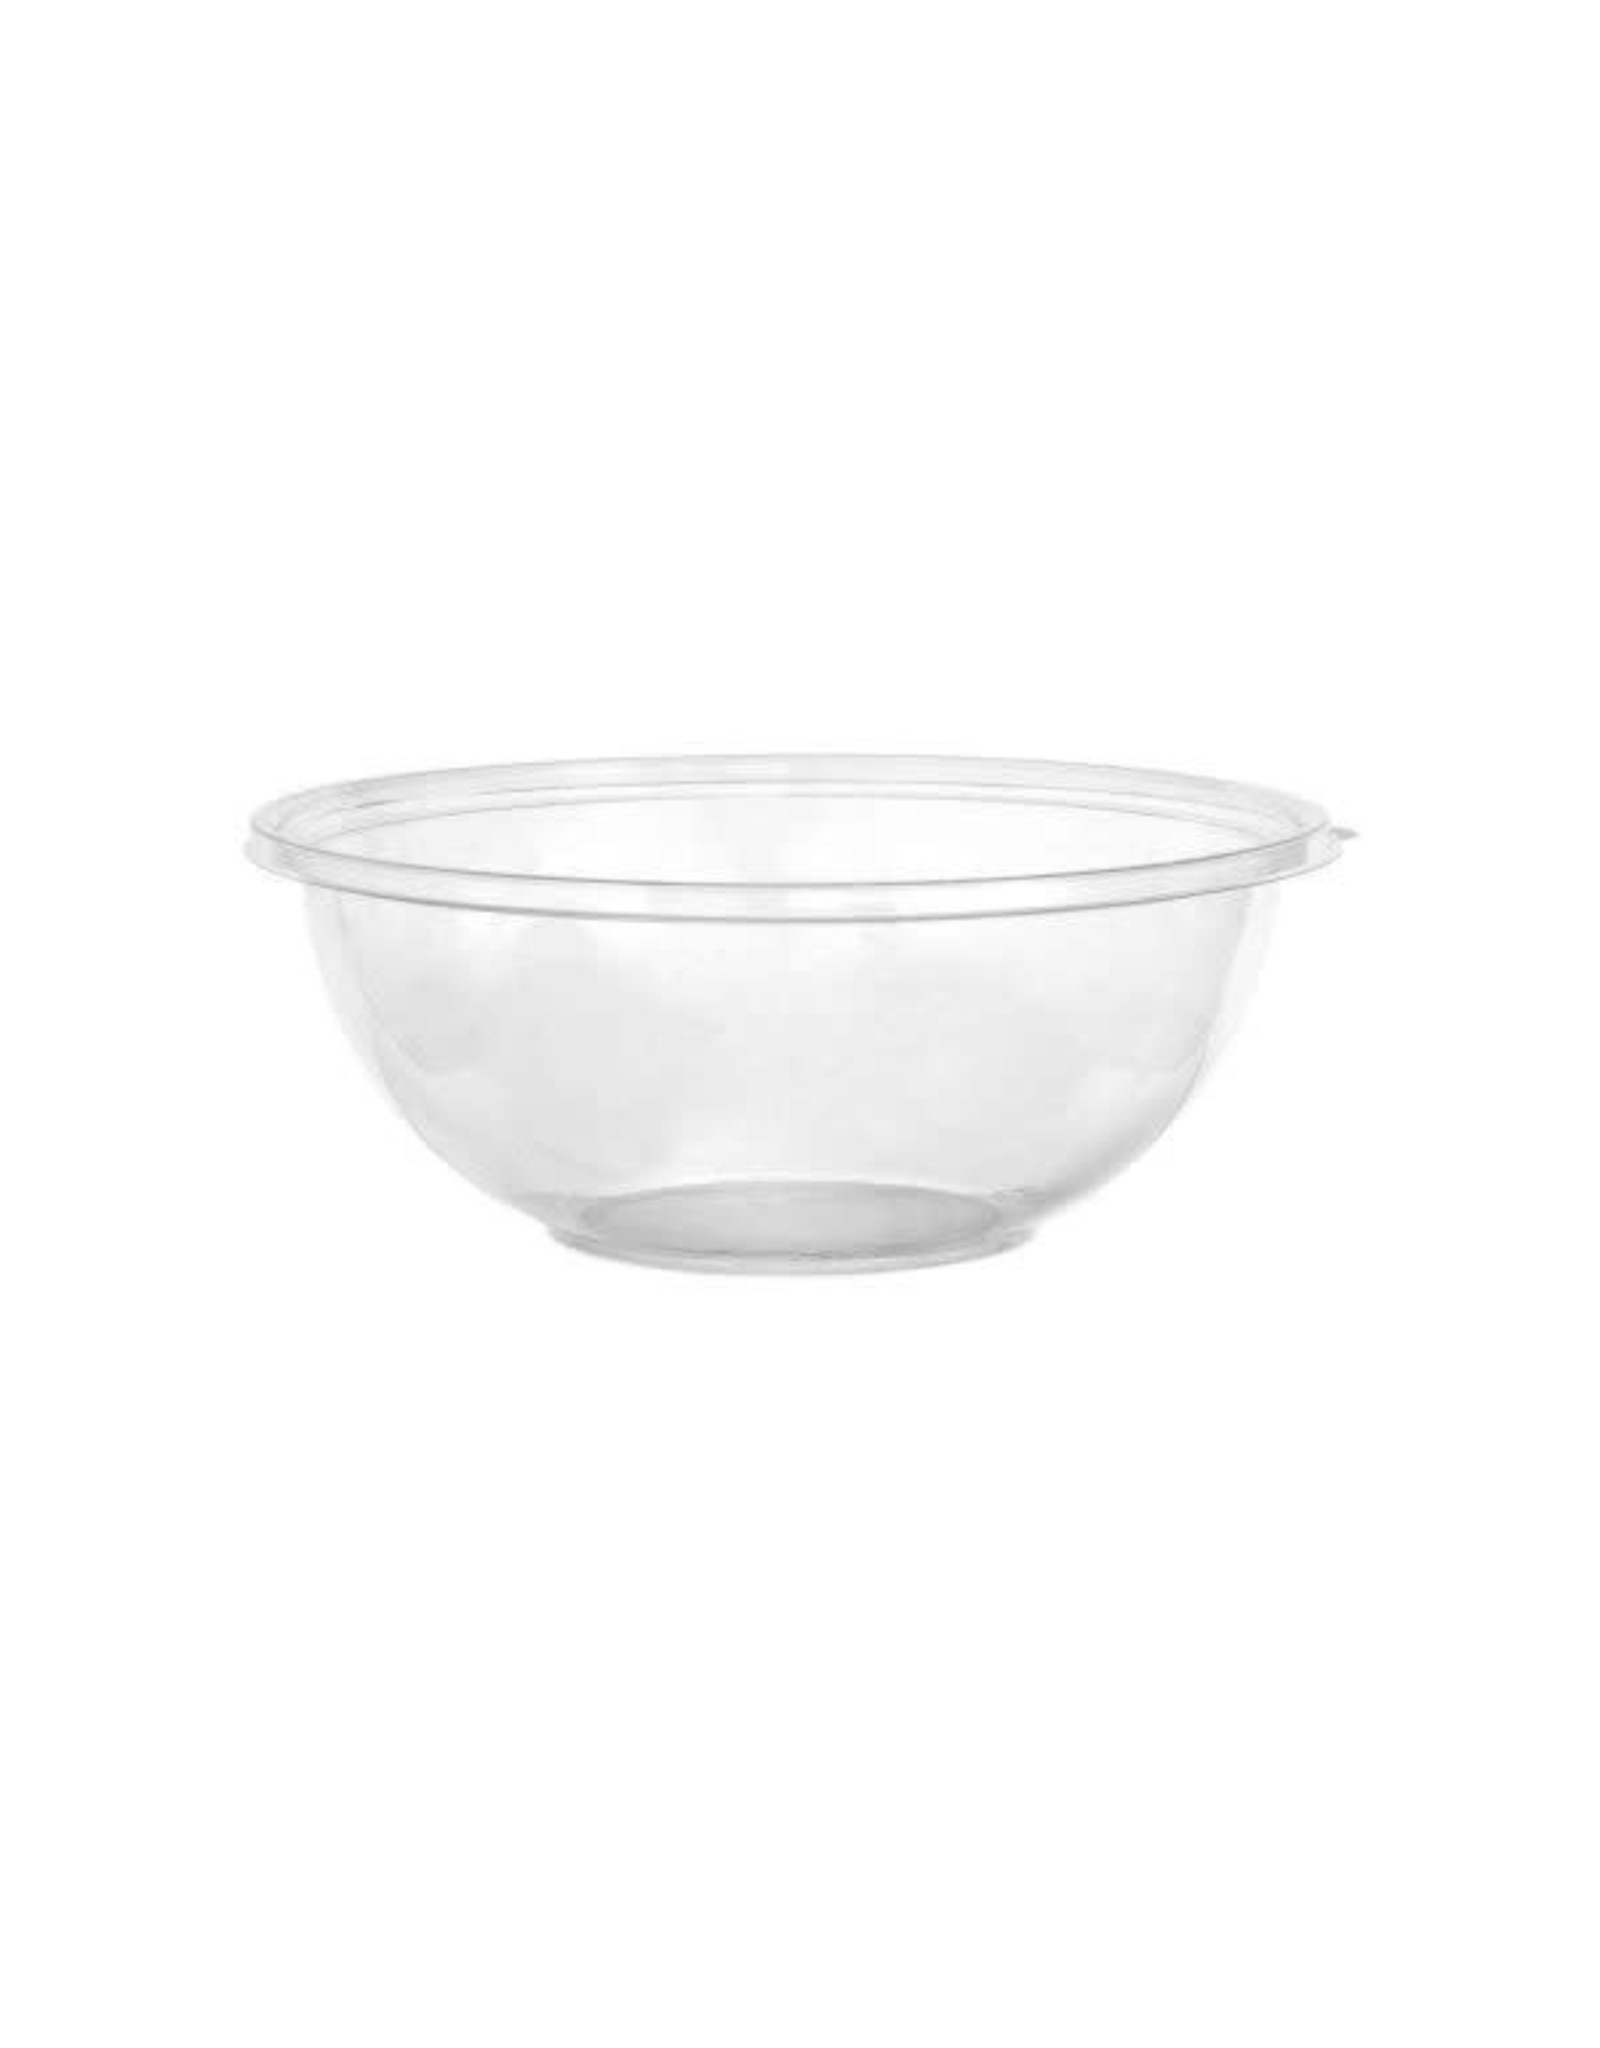 northwest 80oz Clear Serving Bowl - 1ct.